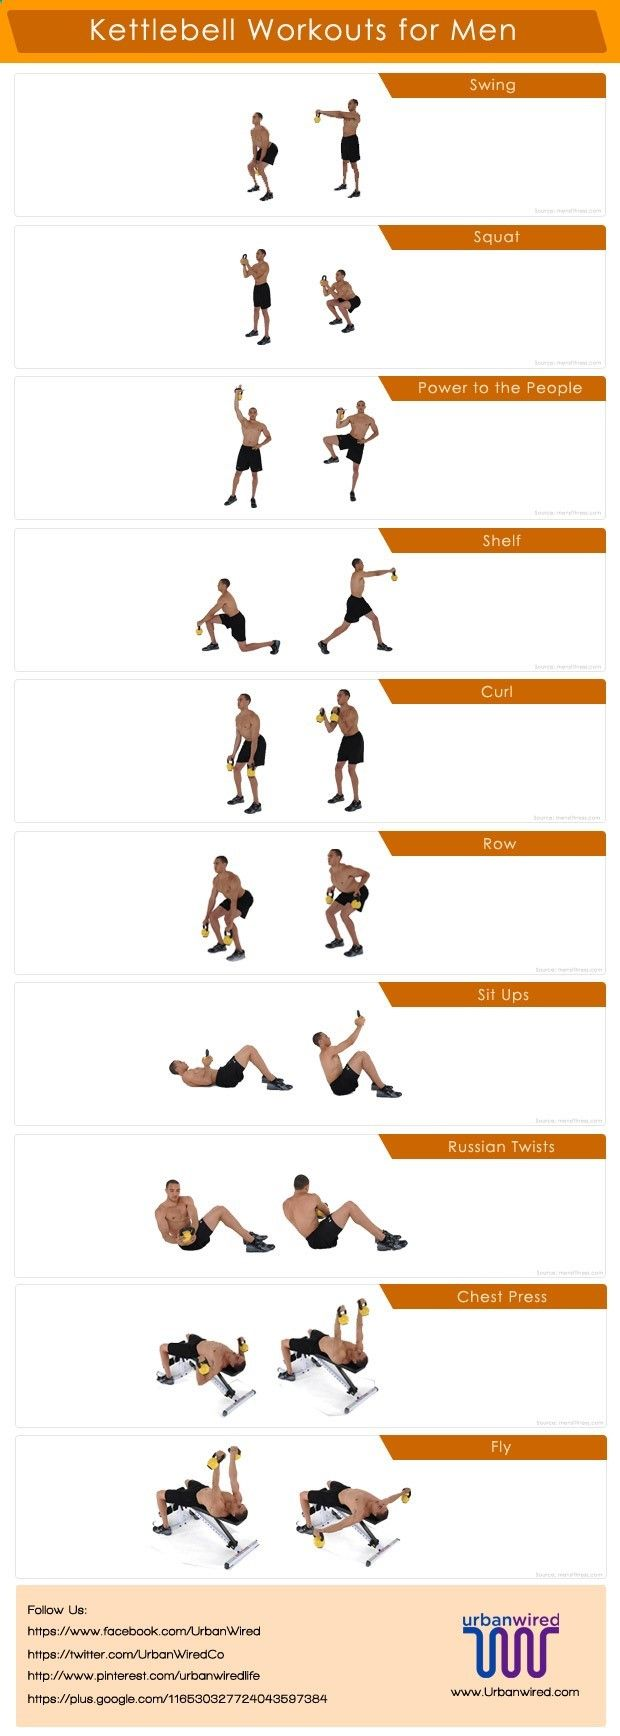 A kettle bell workout will increase your heart rate and work on your core, lower legs and lower back. This is what makes kettlebell workouts for men ideal. https://www.kettlebellmaniac.com/kettlebell-exercises/